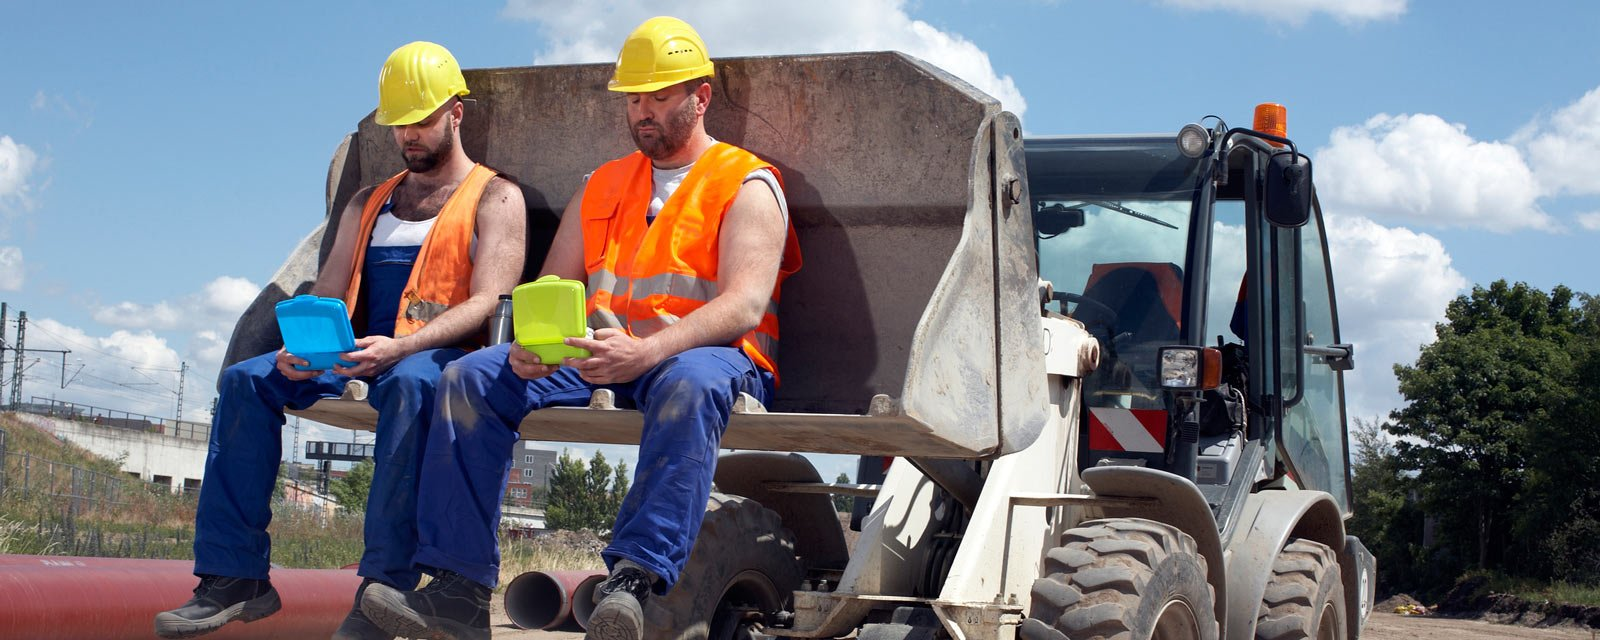 two construction workers eating lunch